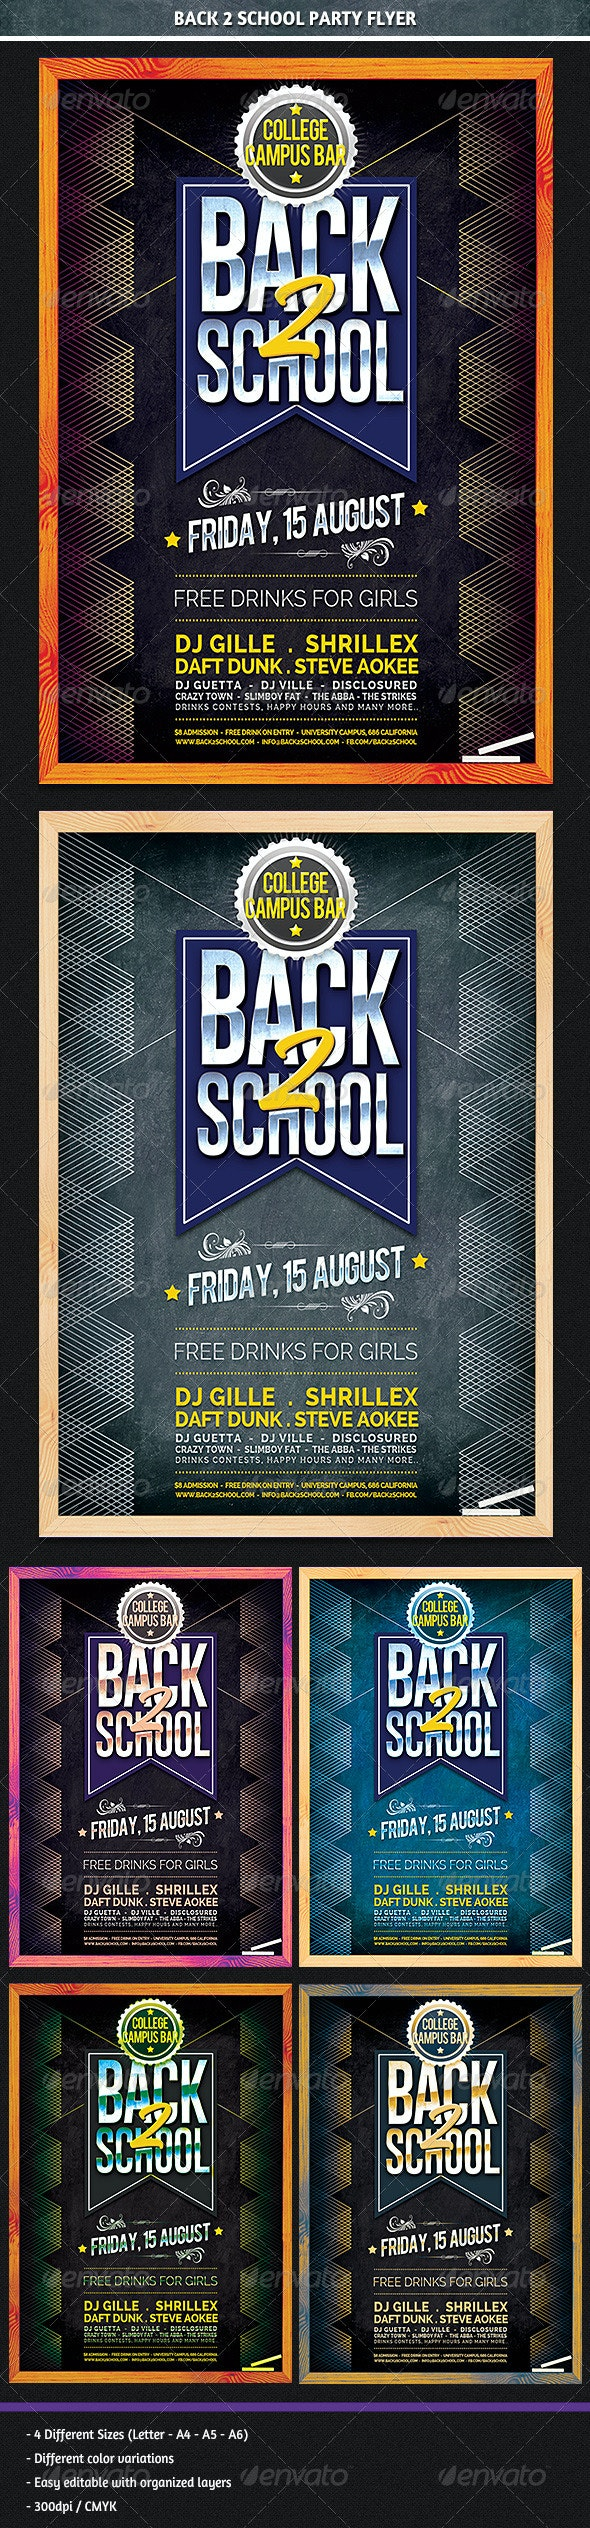 Back 2 School Party Flyer - Clubs & Parties Events